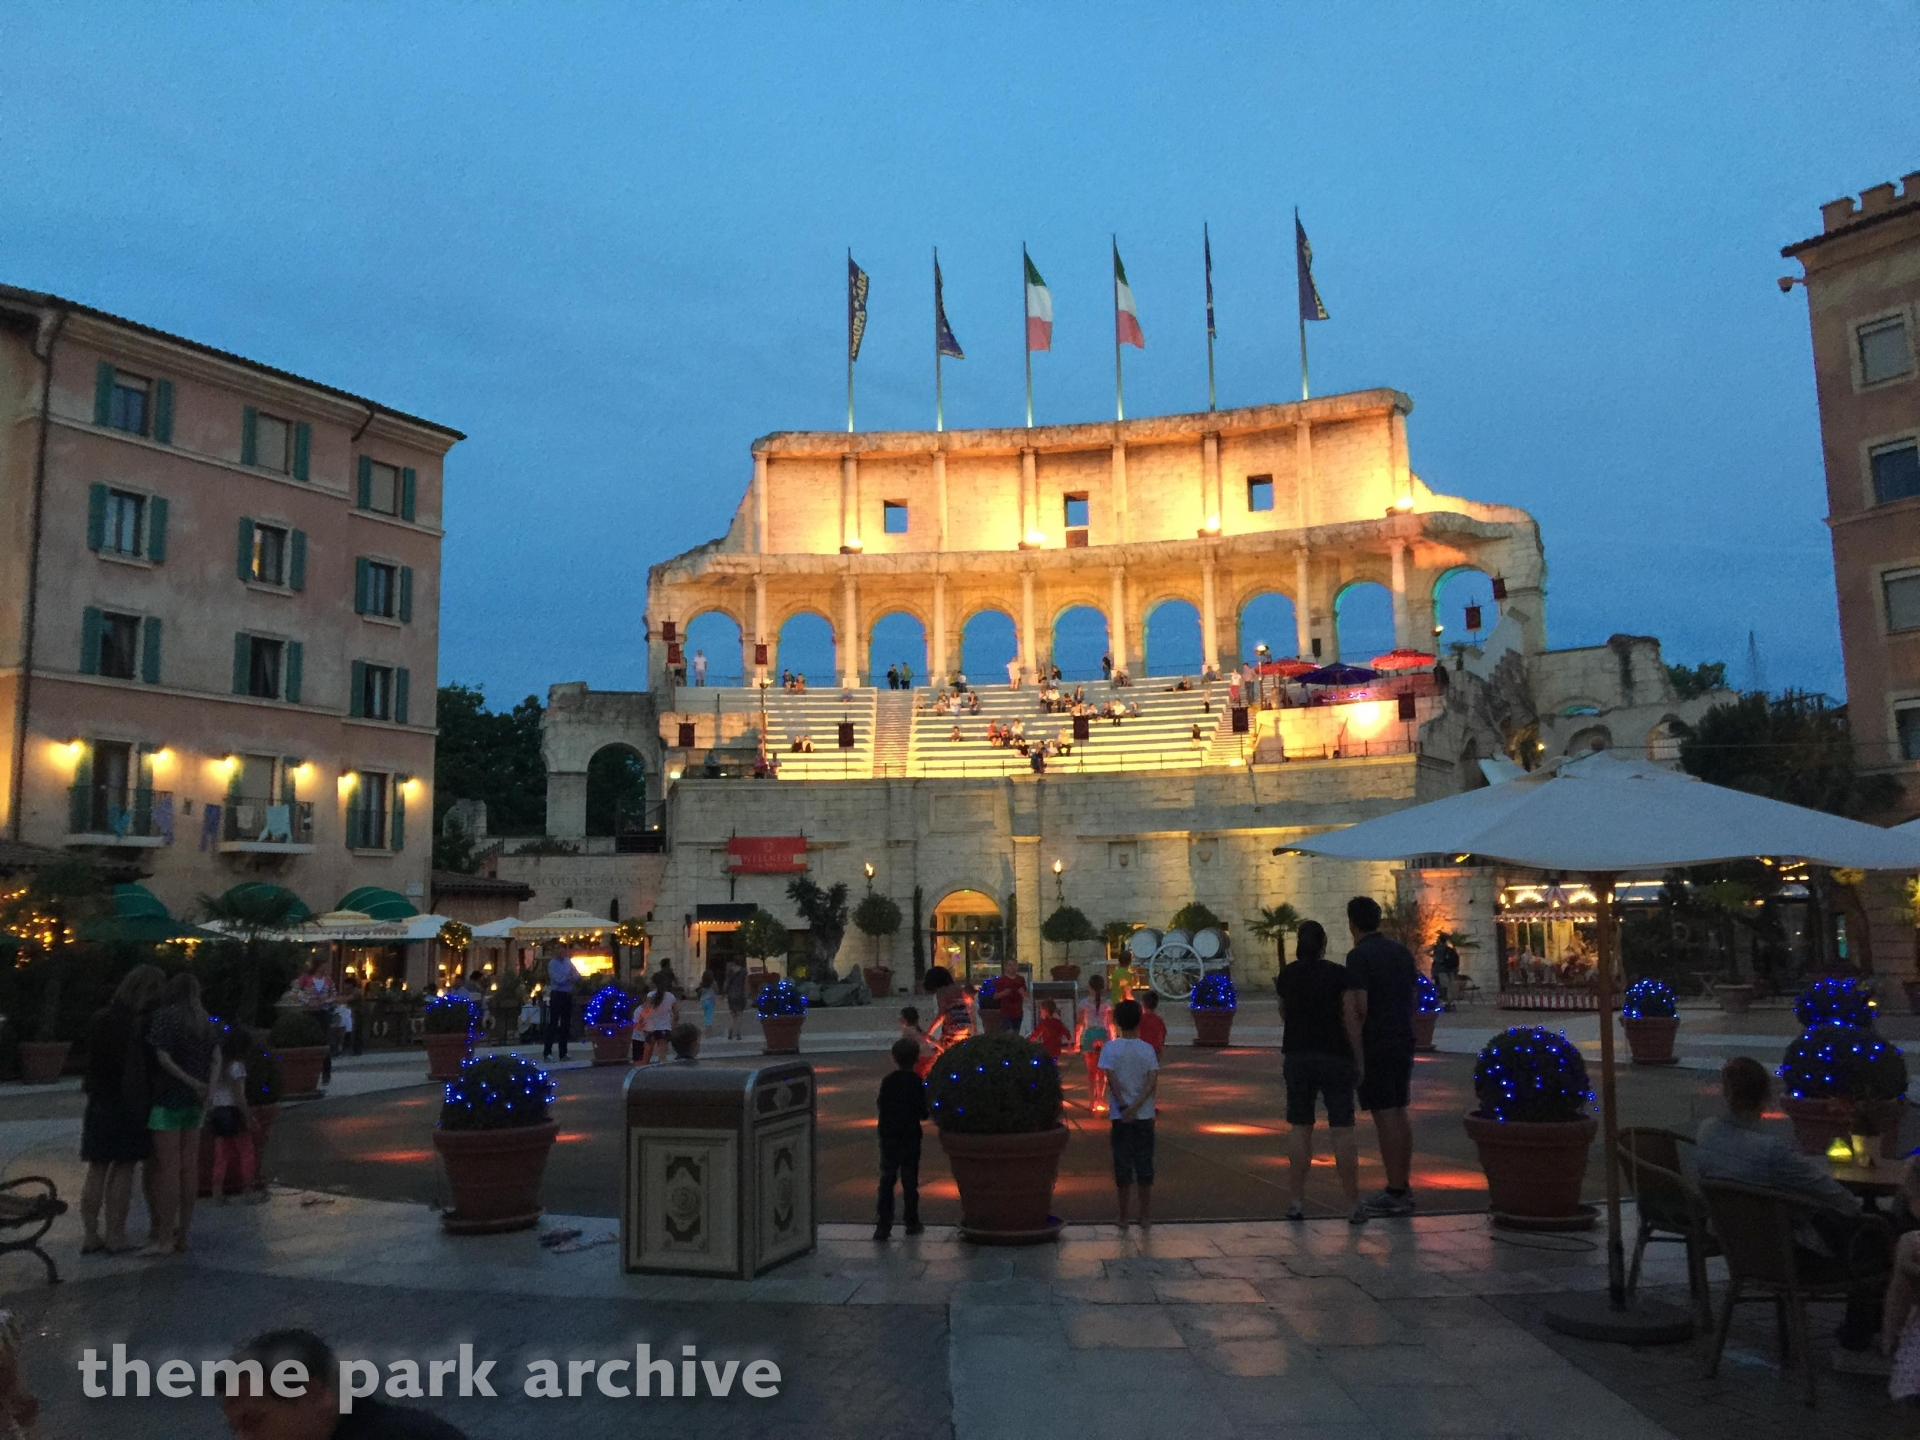 Hotel Colosseo At Europa Park Theme Park Archive